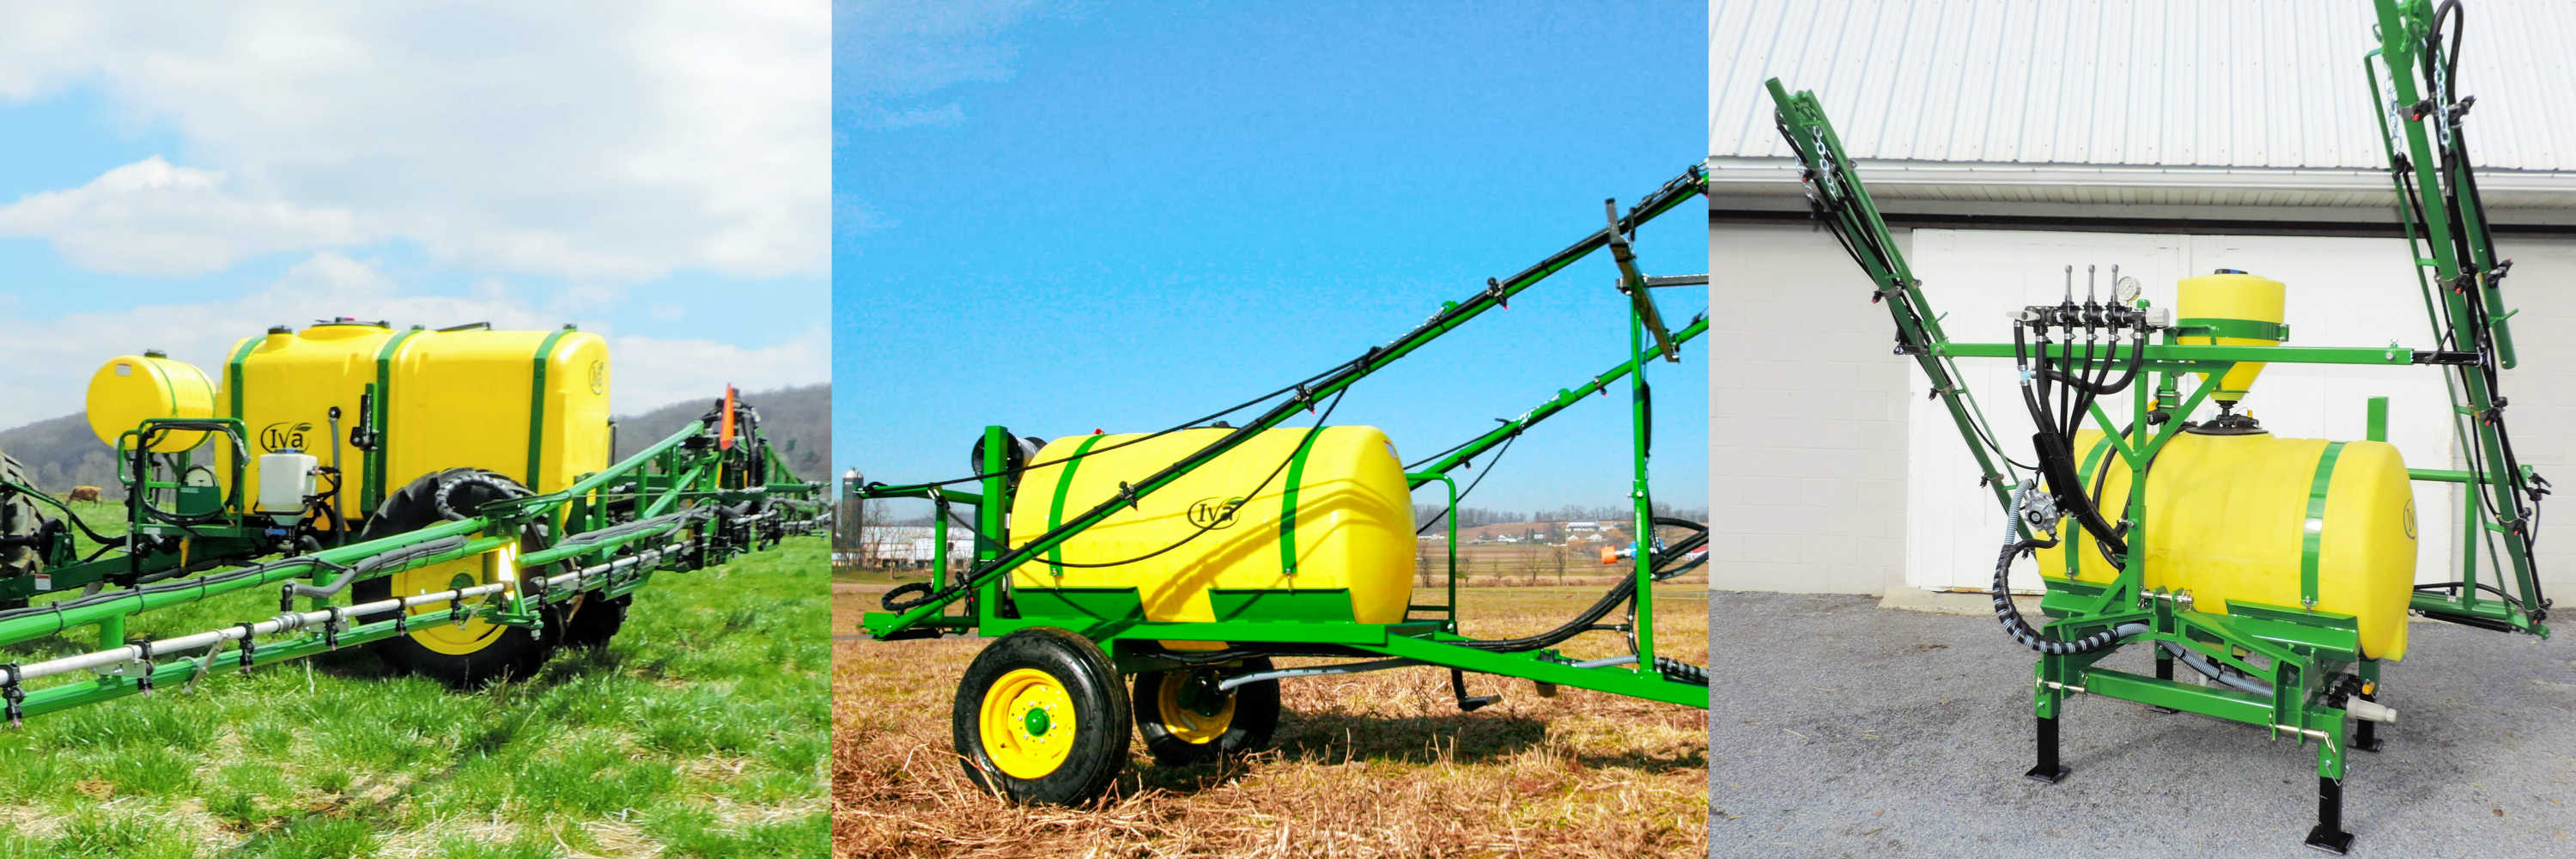 Iva Sprayers, 3-point hitch and trailer crop sprayers